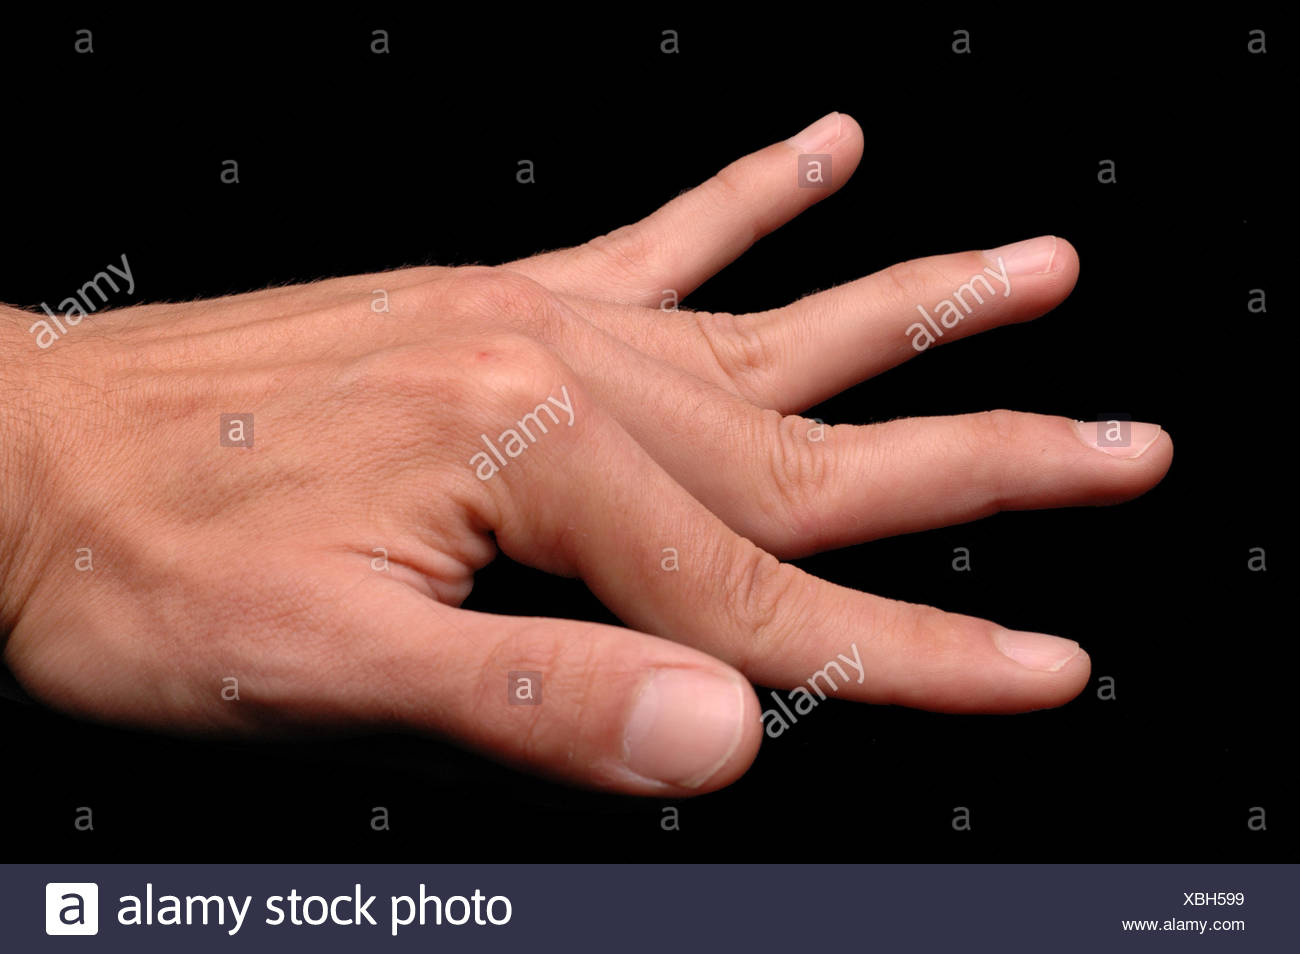 Ehlers Danlos Syndrome Ehlers Danlos Syndrome Stock Photo 282504469 Alamy